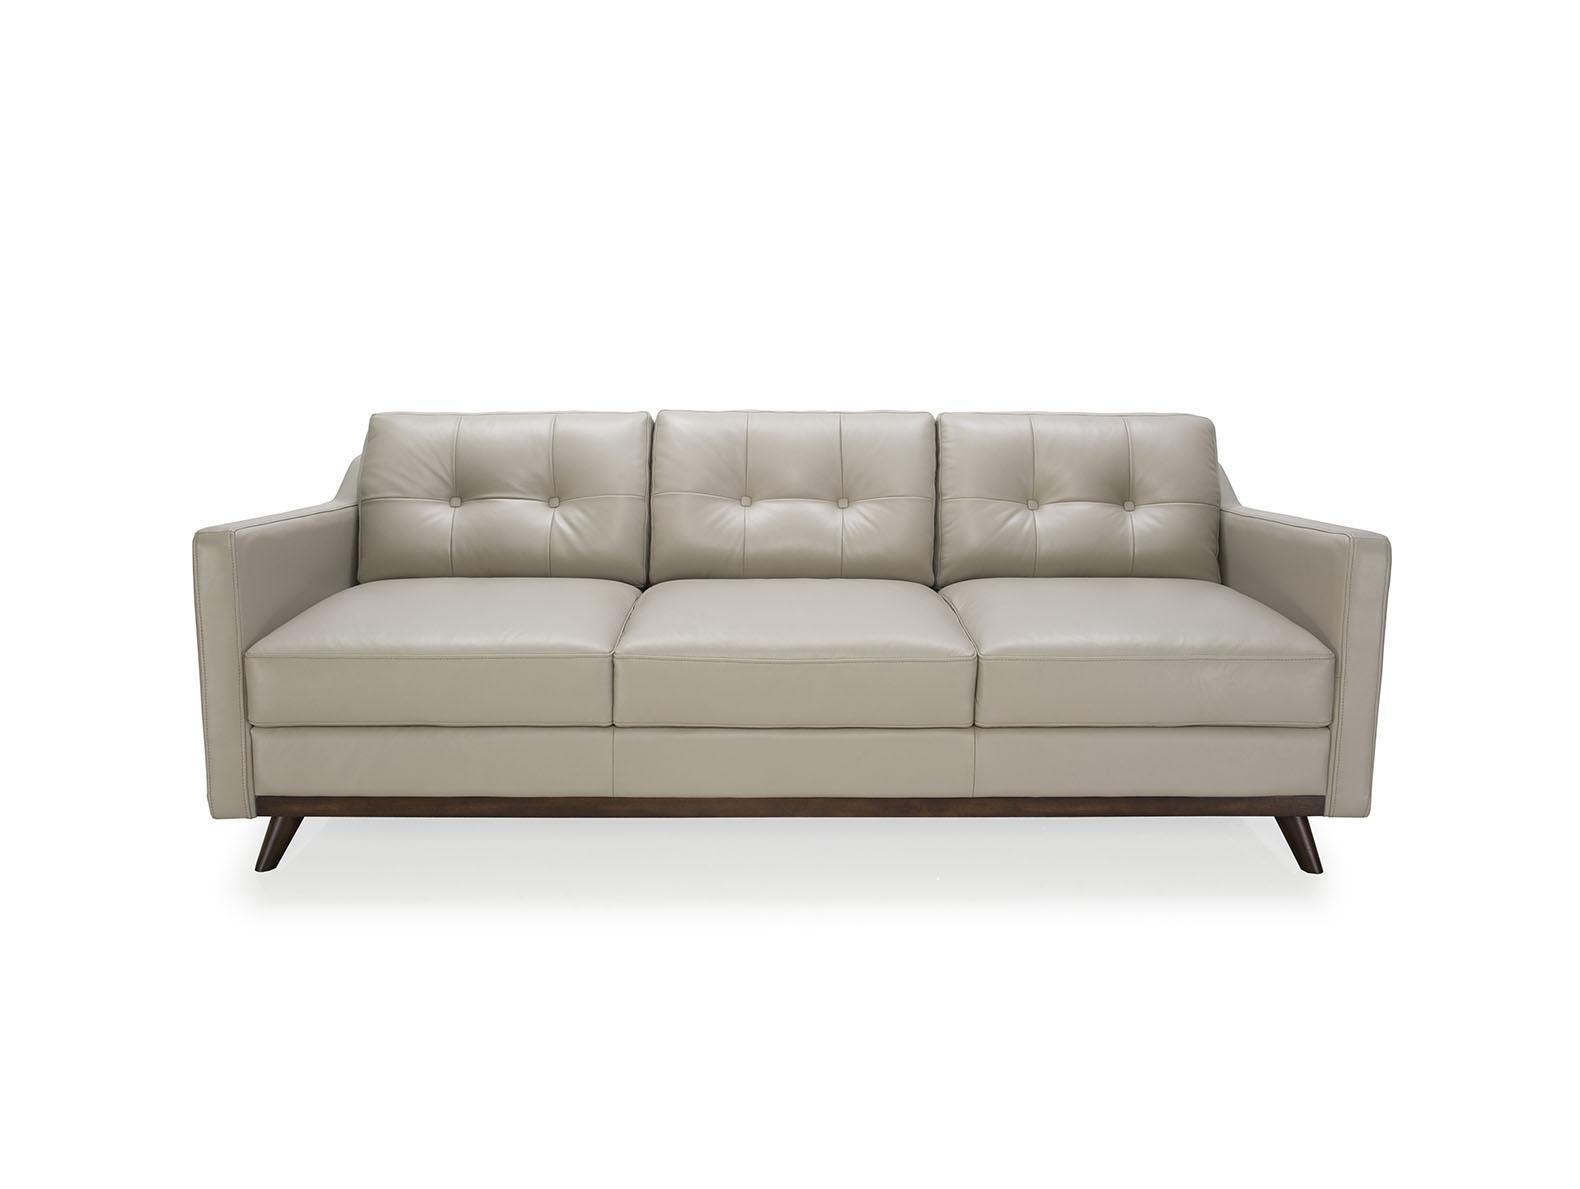 Modern Leather Furniture | Modern Design Sofas Intended For Blair Leather Sofas (View 17 of 20)